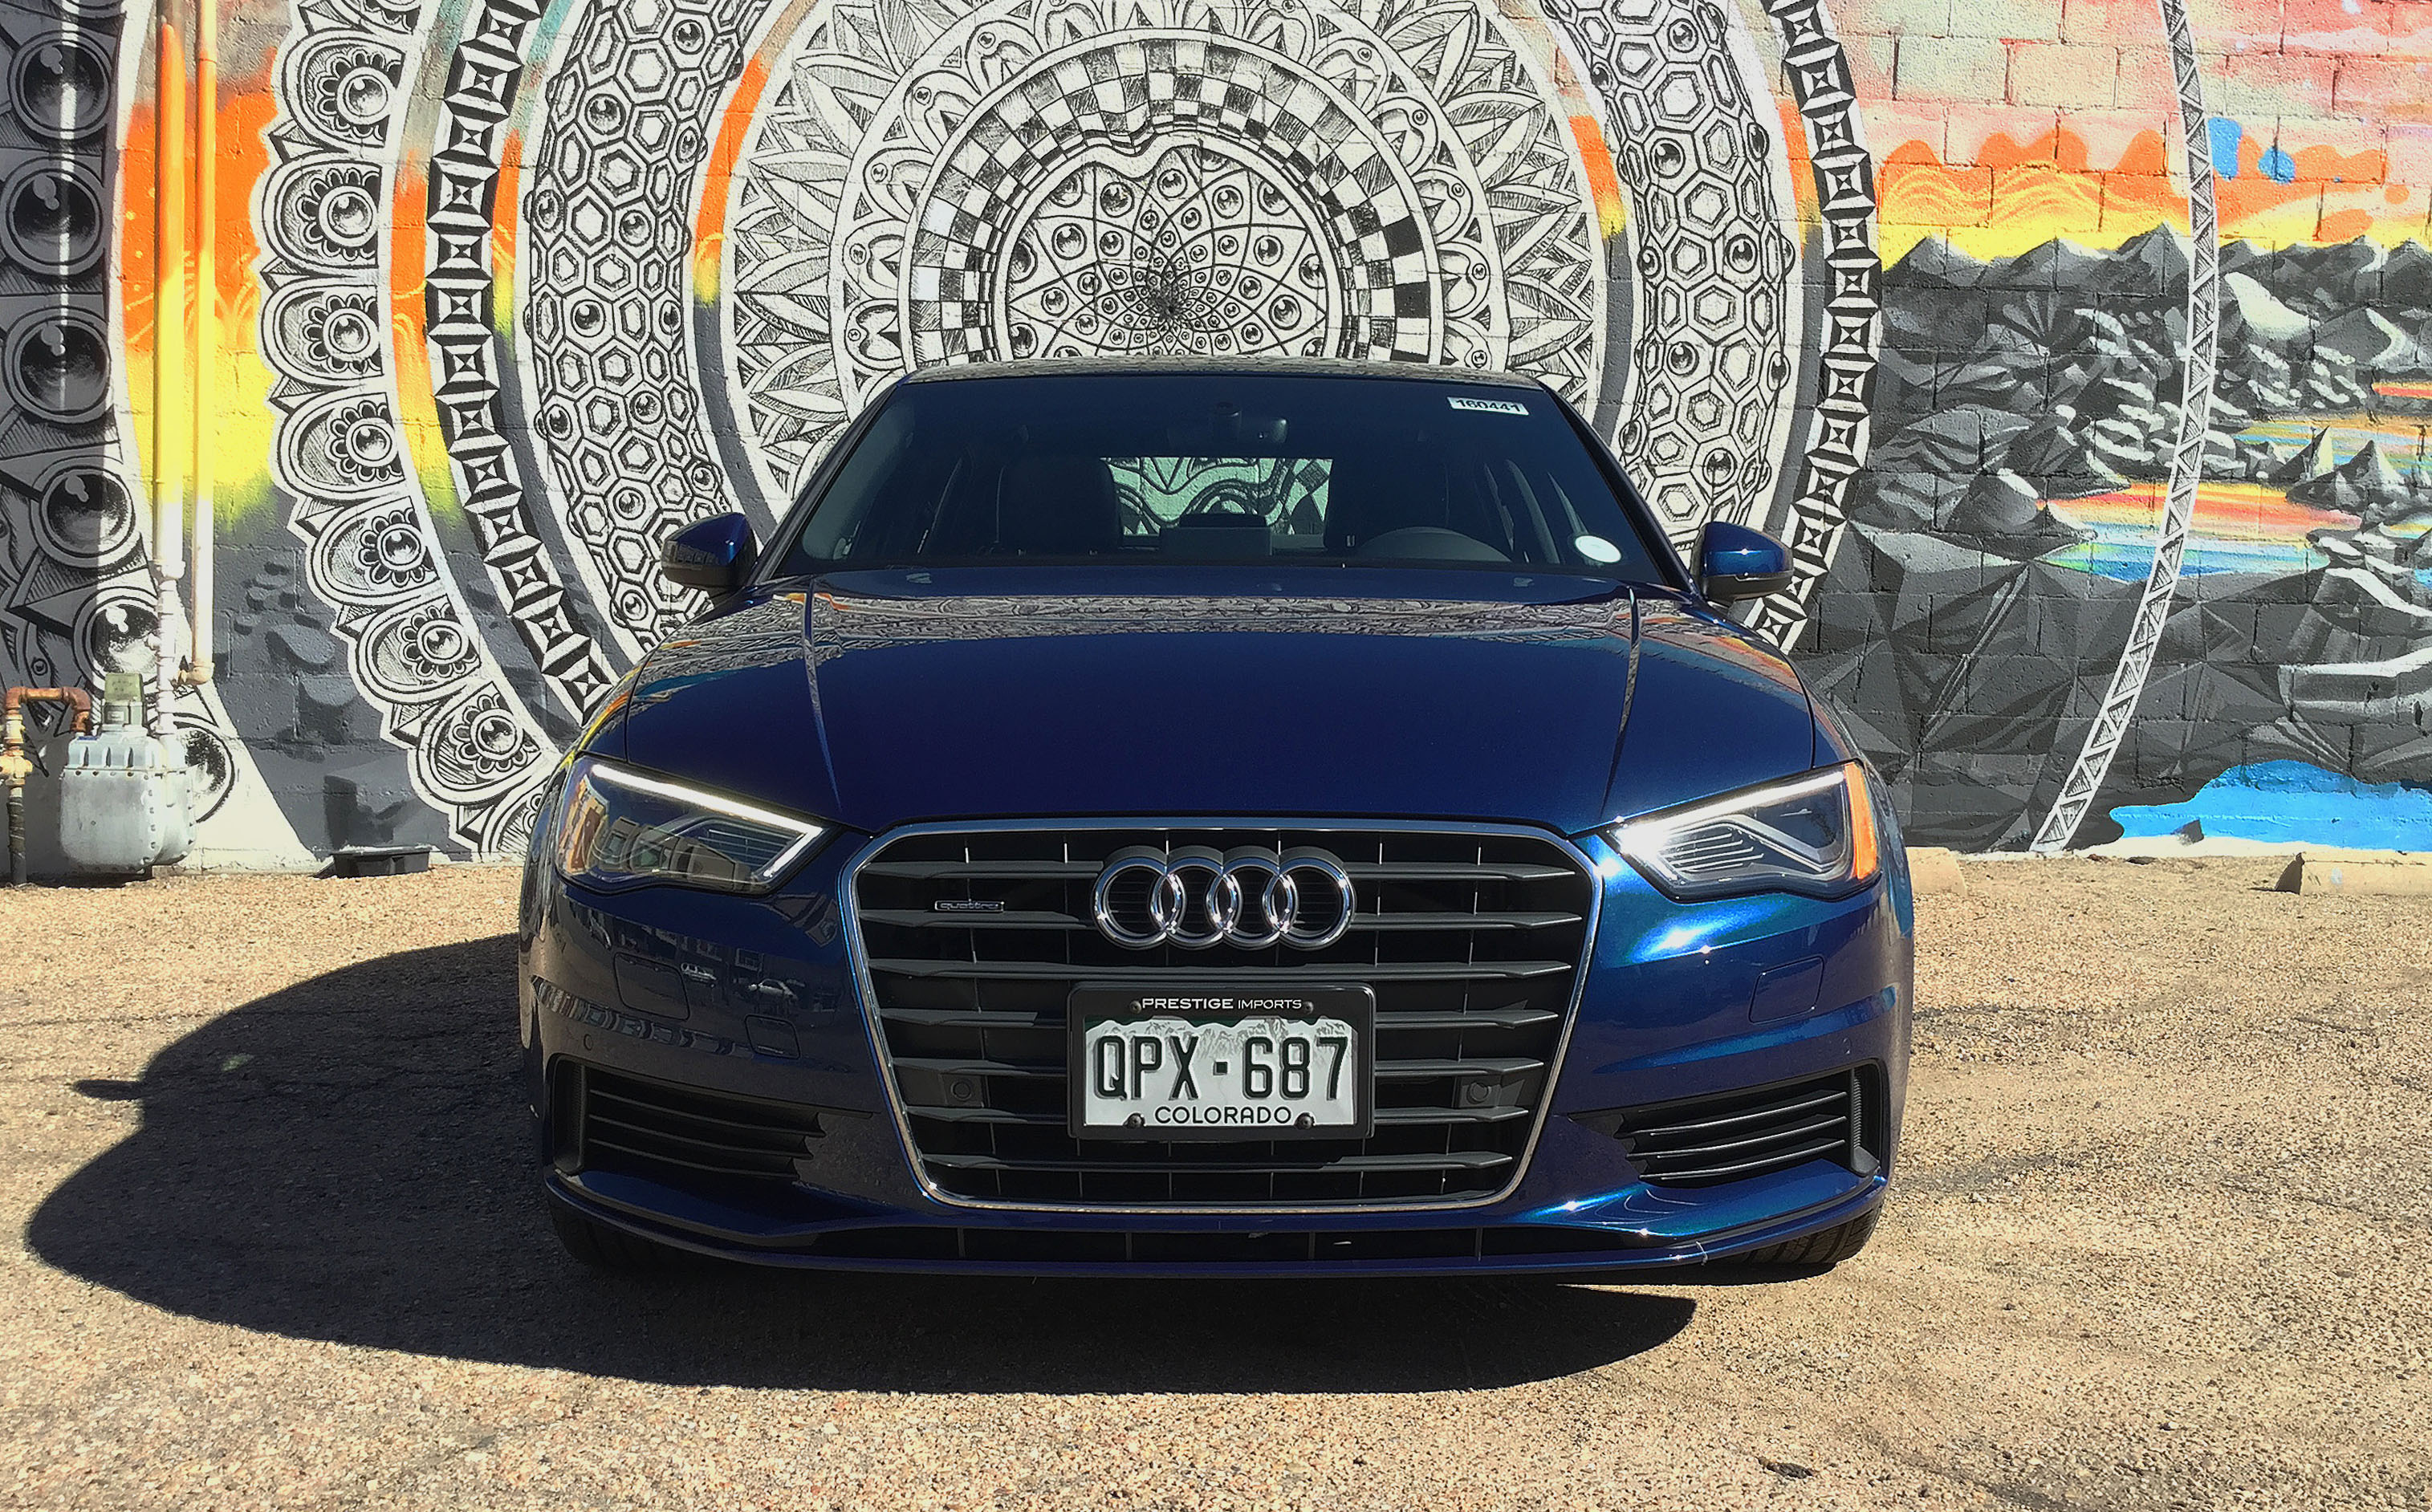 The Audi A3 in front of a mesmerizing mural in Denver's RiNo Art District.